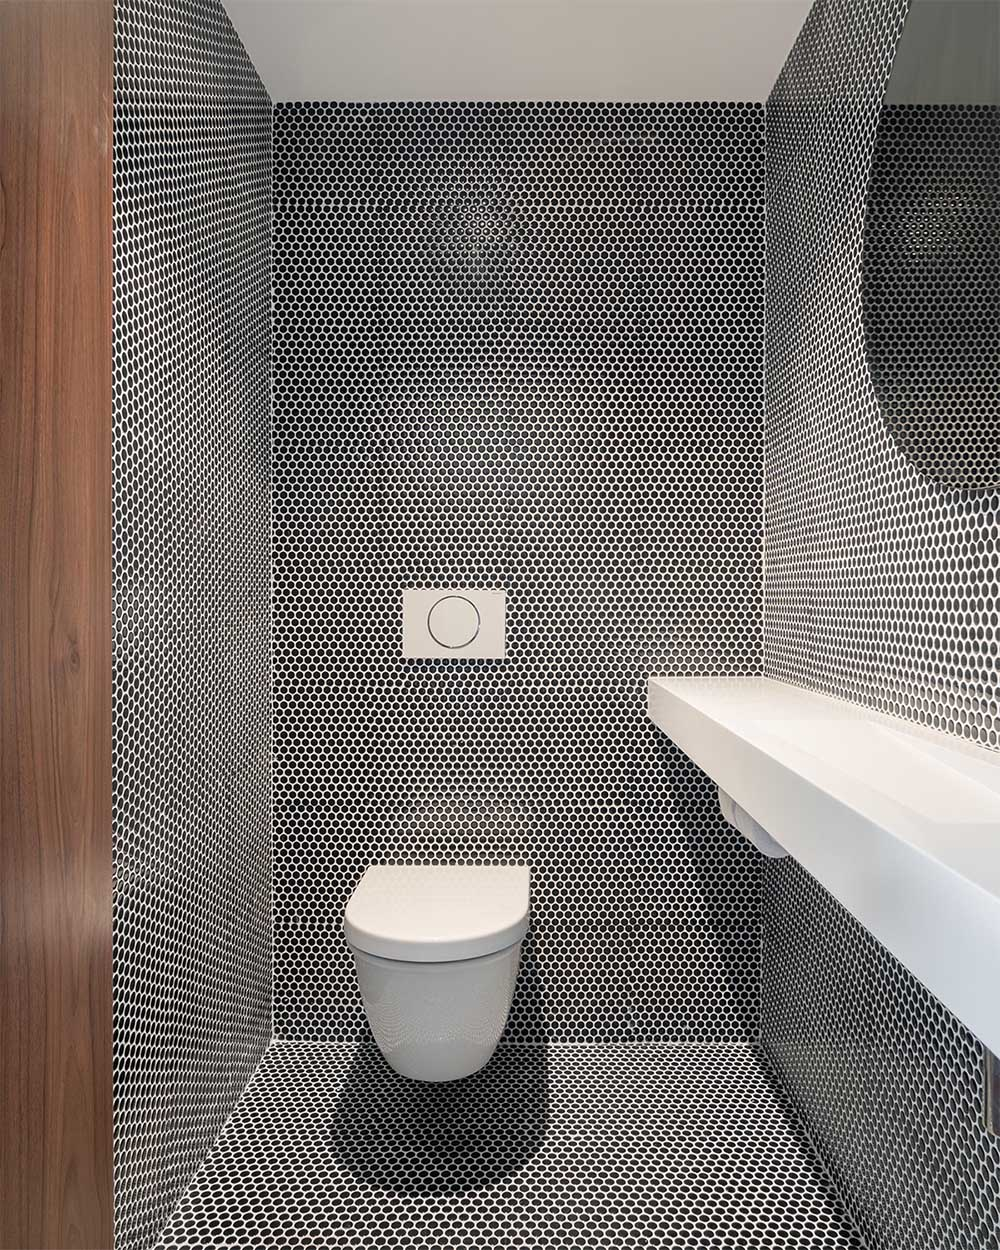 A modern powder room that has black penny tiles with white grout that cover the walls and floor.